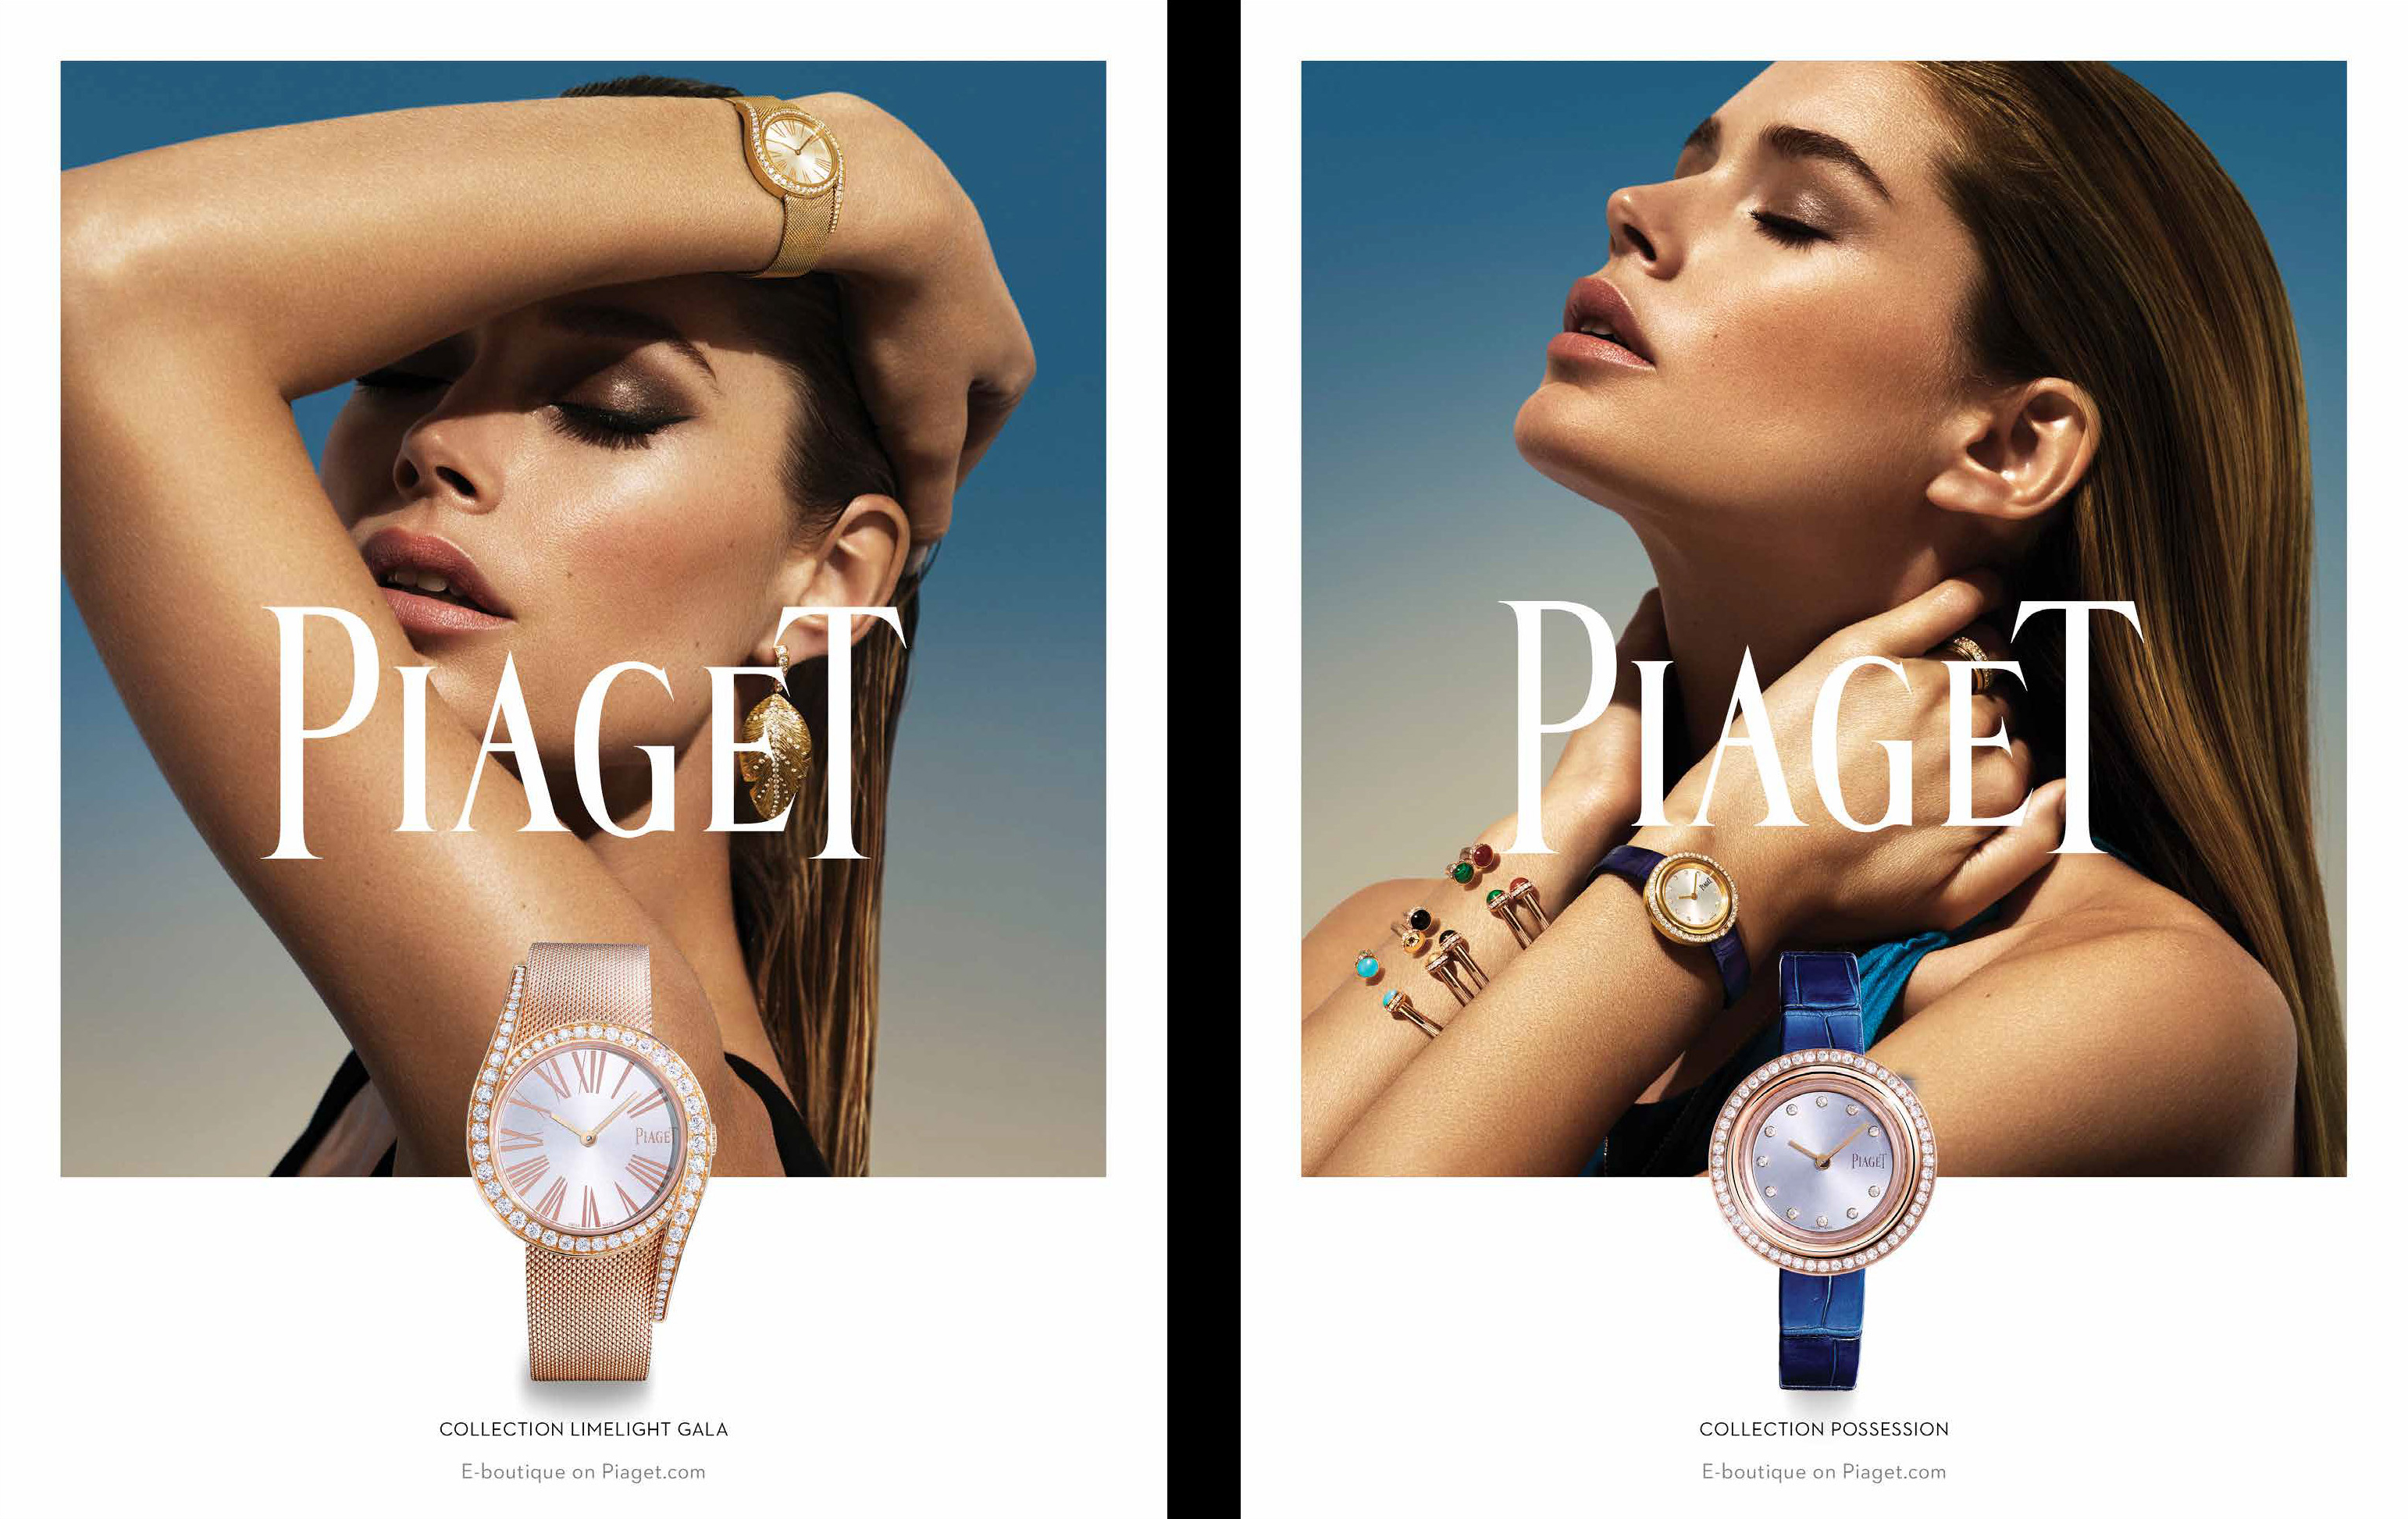 Piaget 2018 campagne